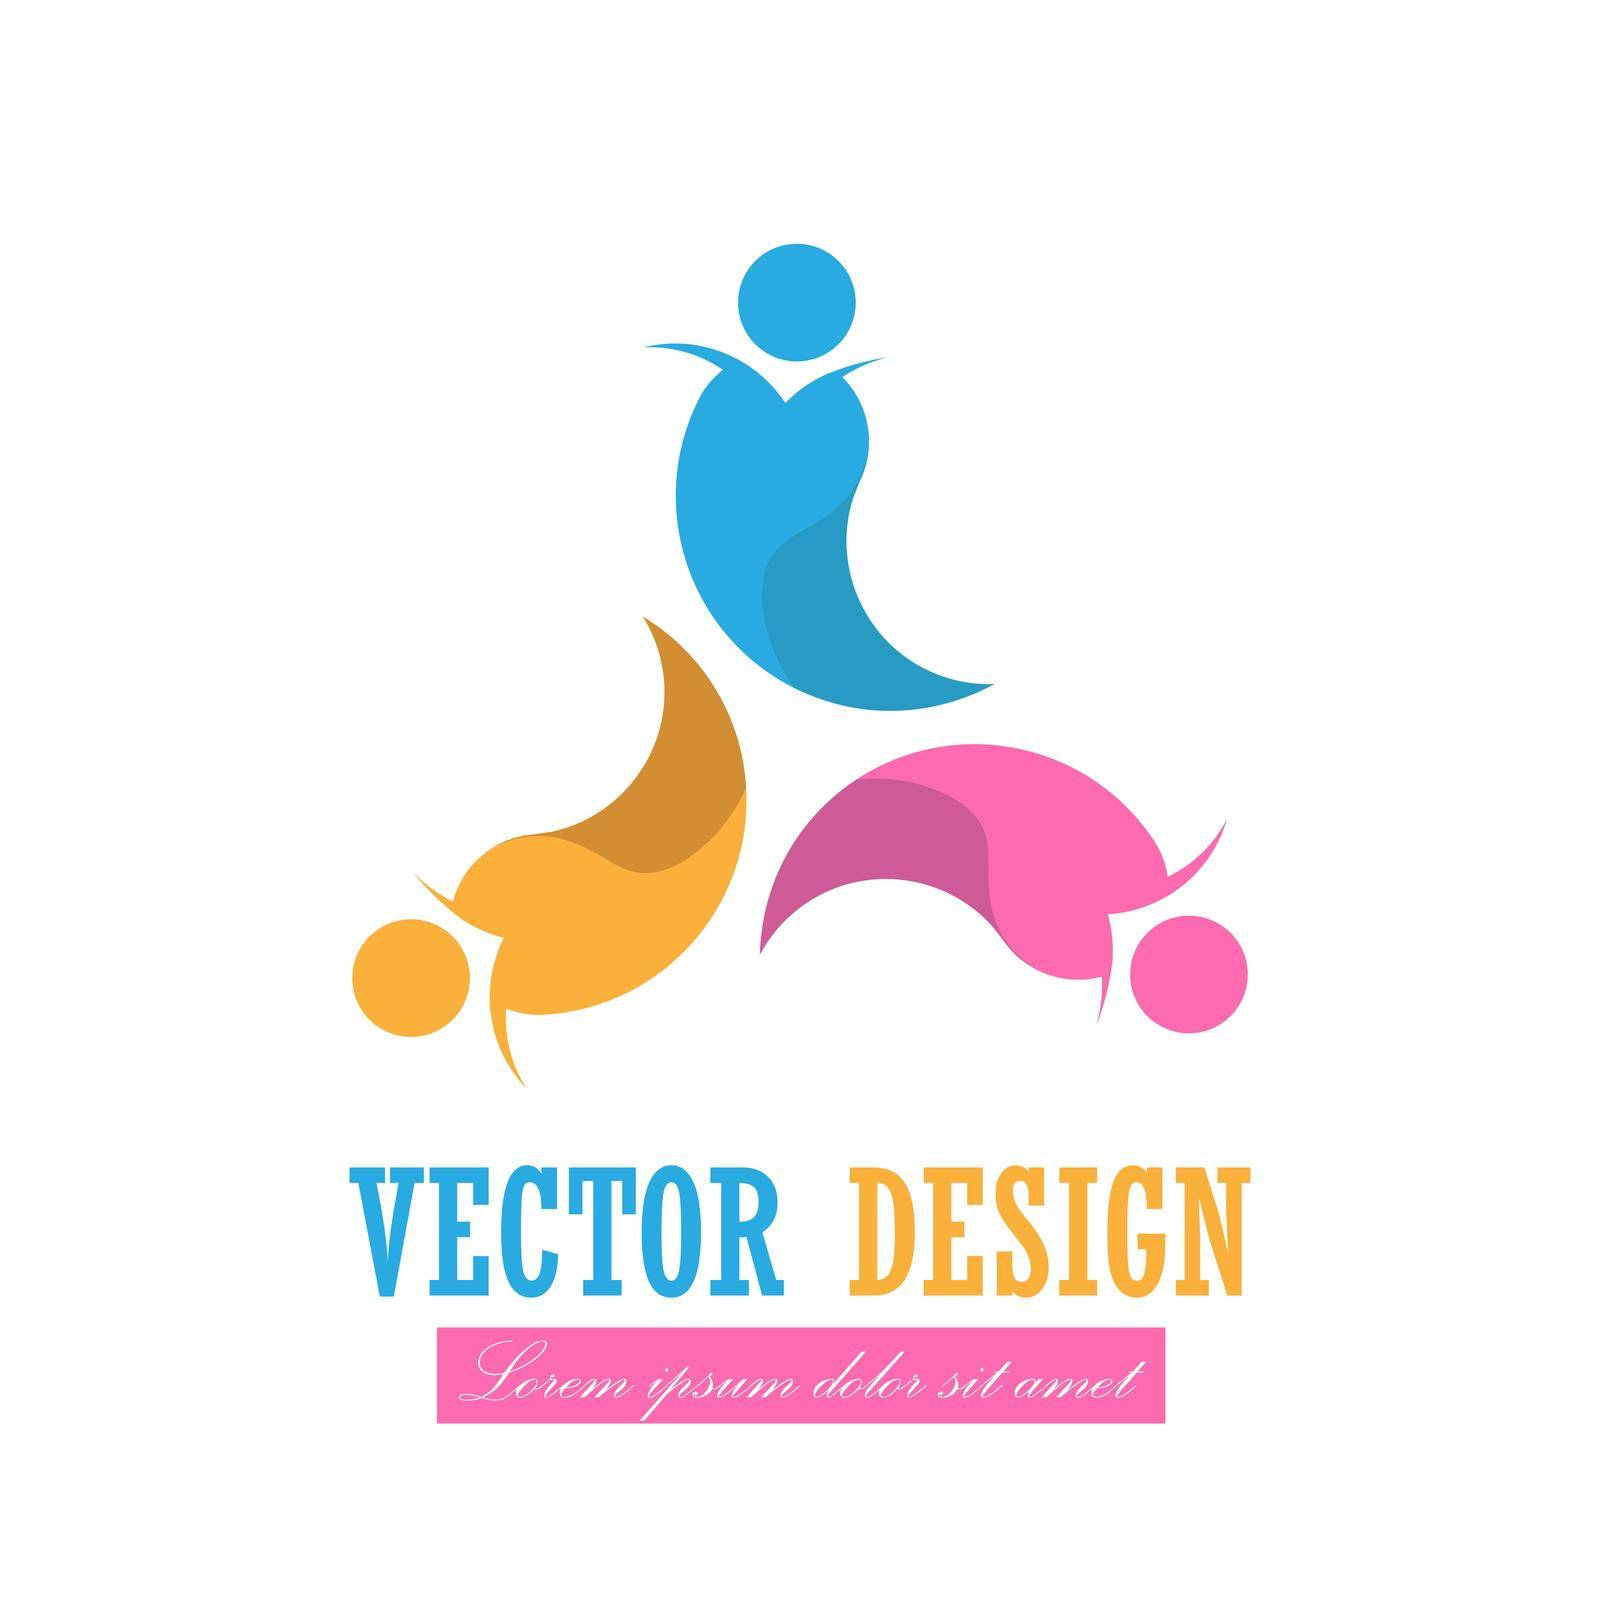 company's logo. Vector illustration for a logo, logo, brand or social project by Grommik